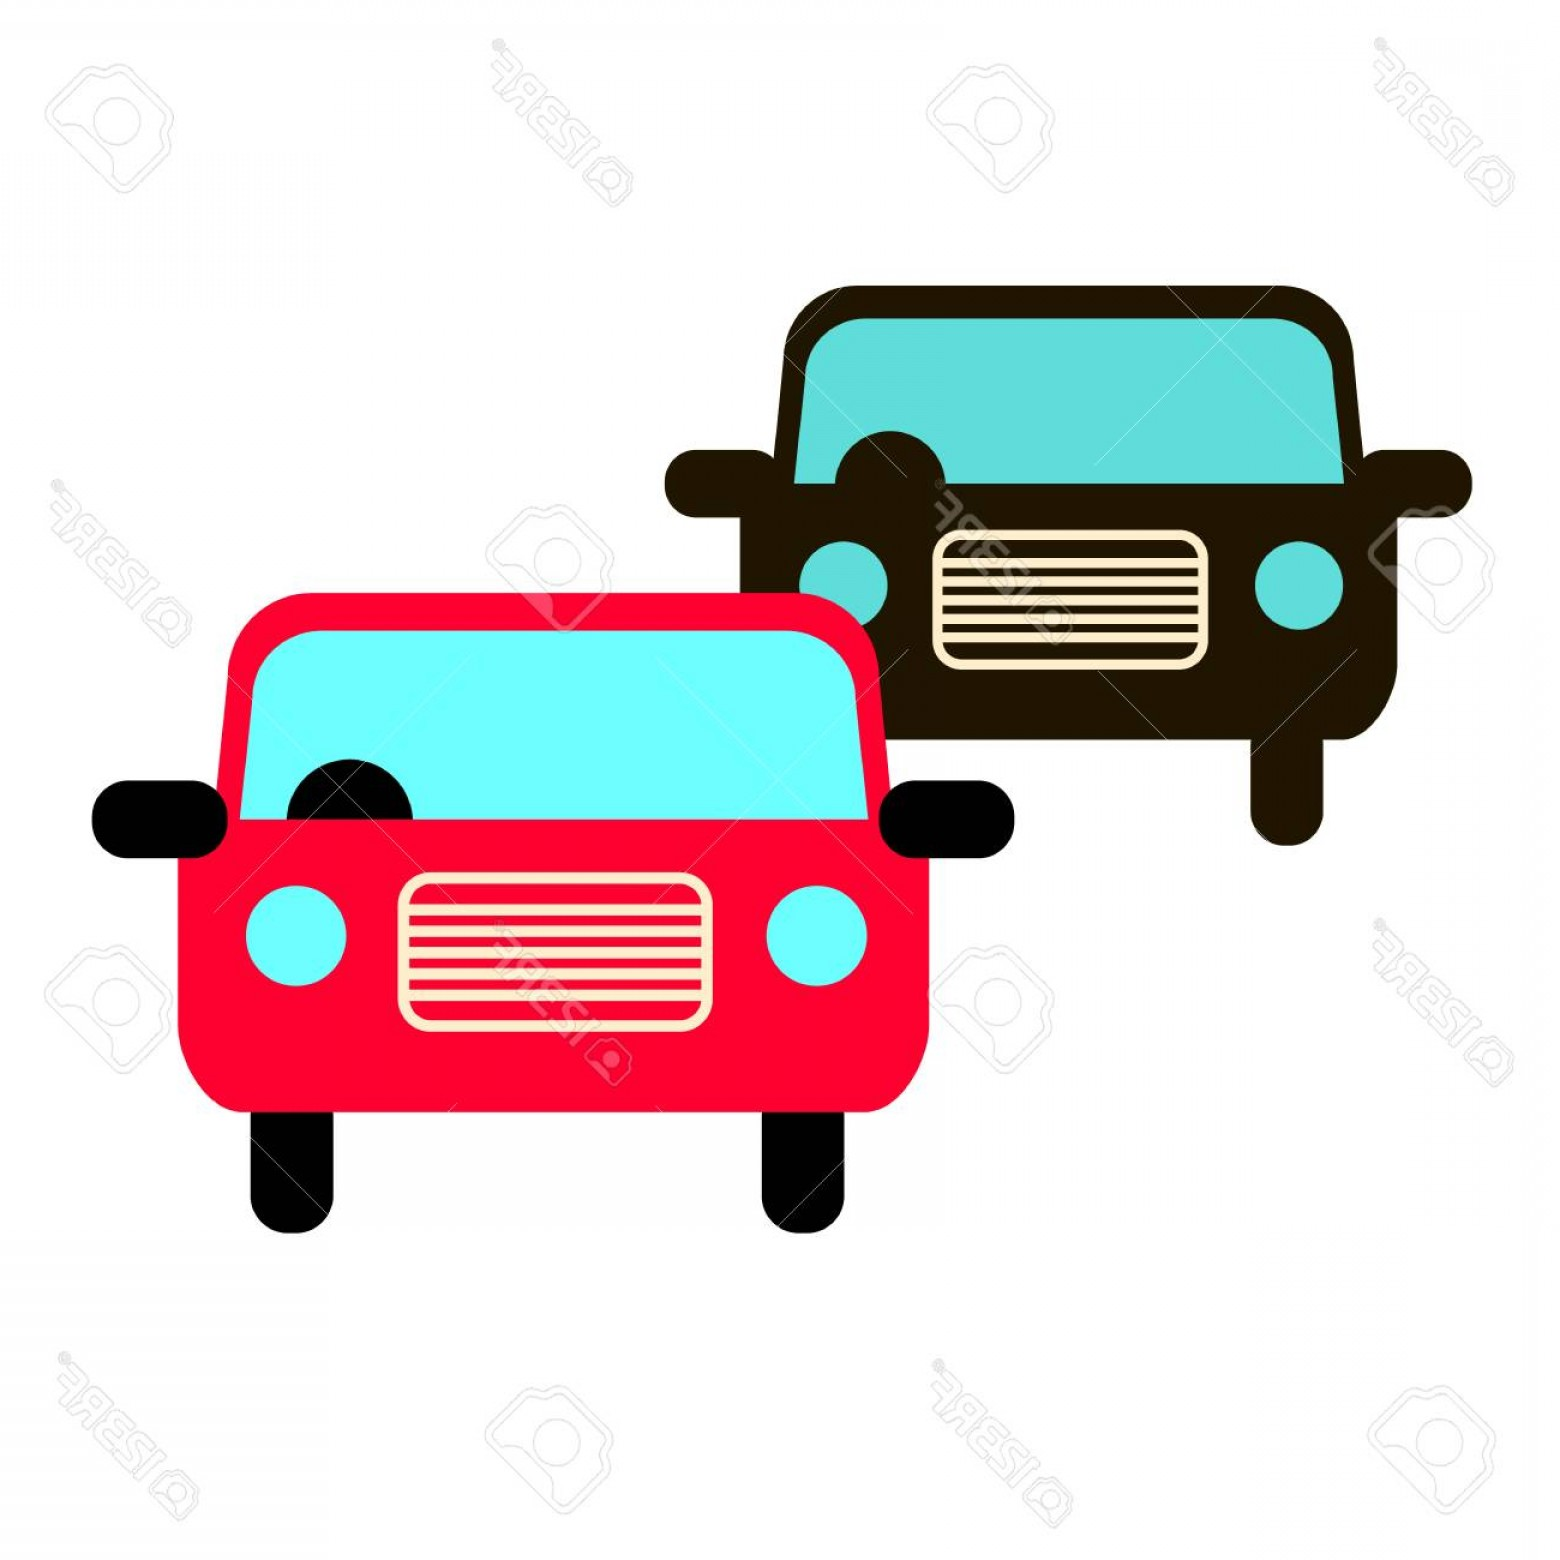 Auto Mobile Vector Art: Photostock Vector Car Vector Auto Automobile Illustration Transport Vehicle